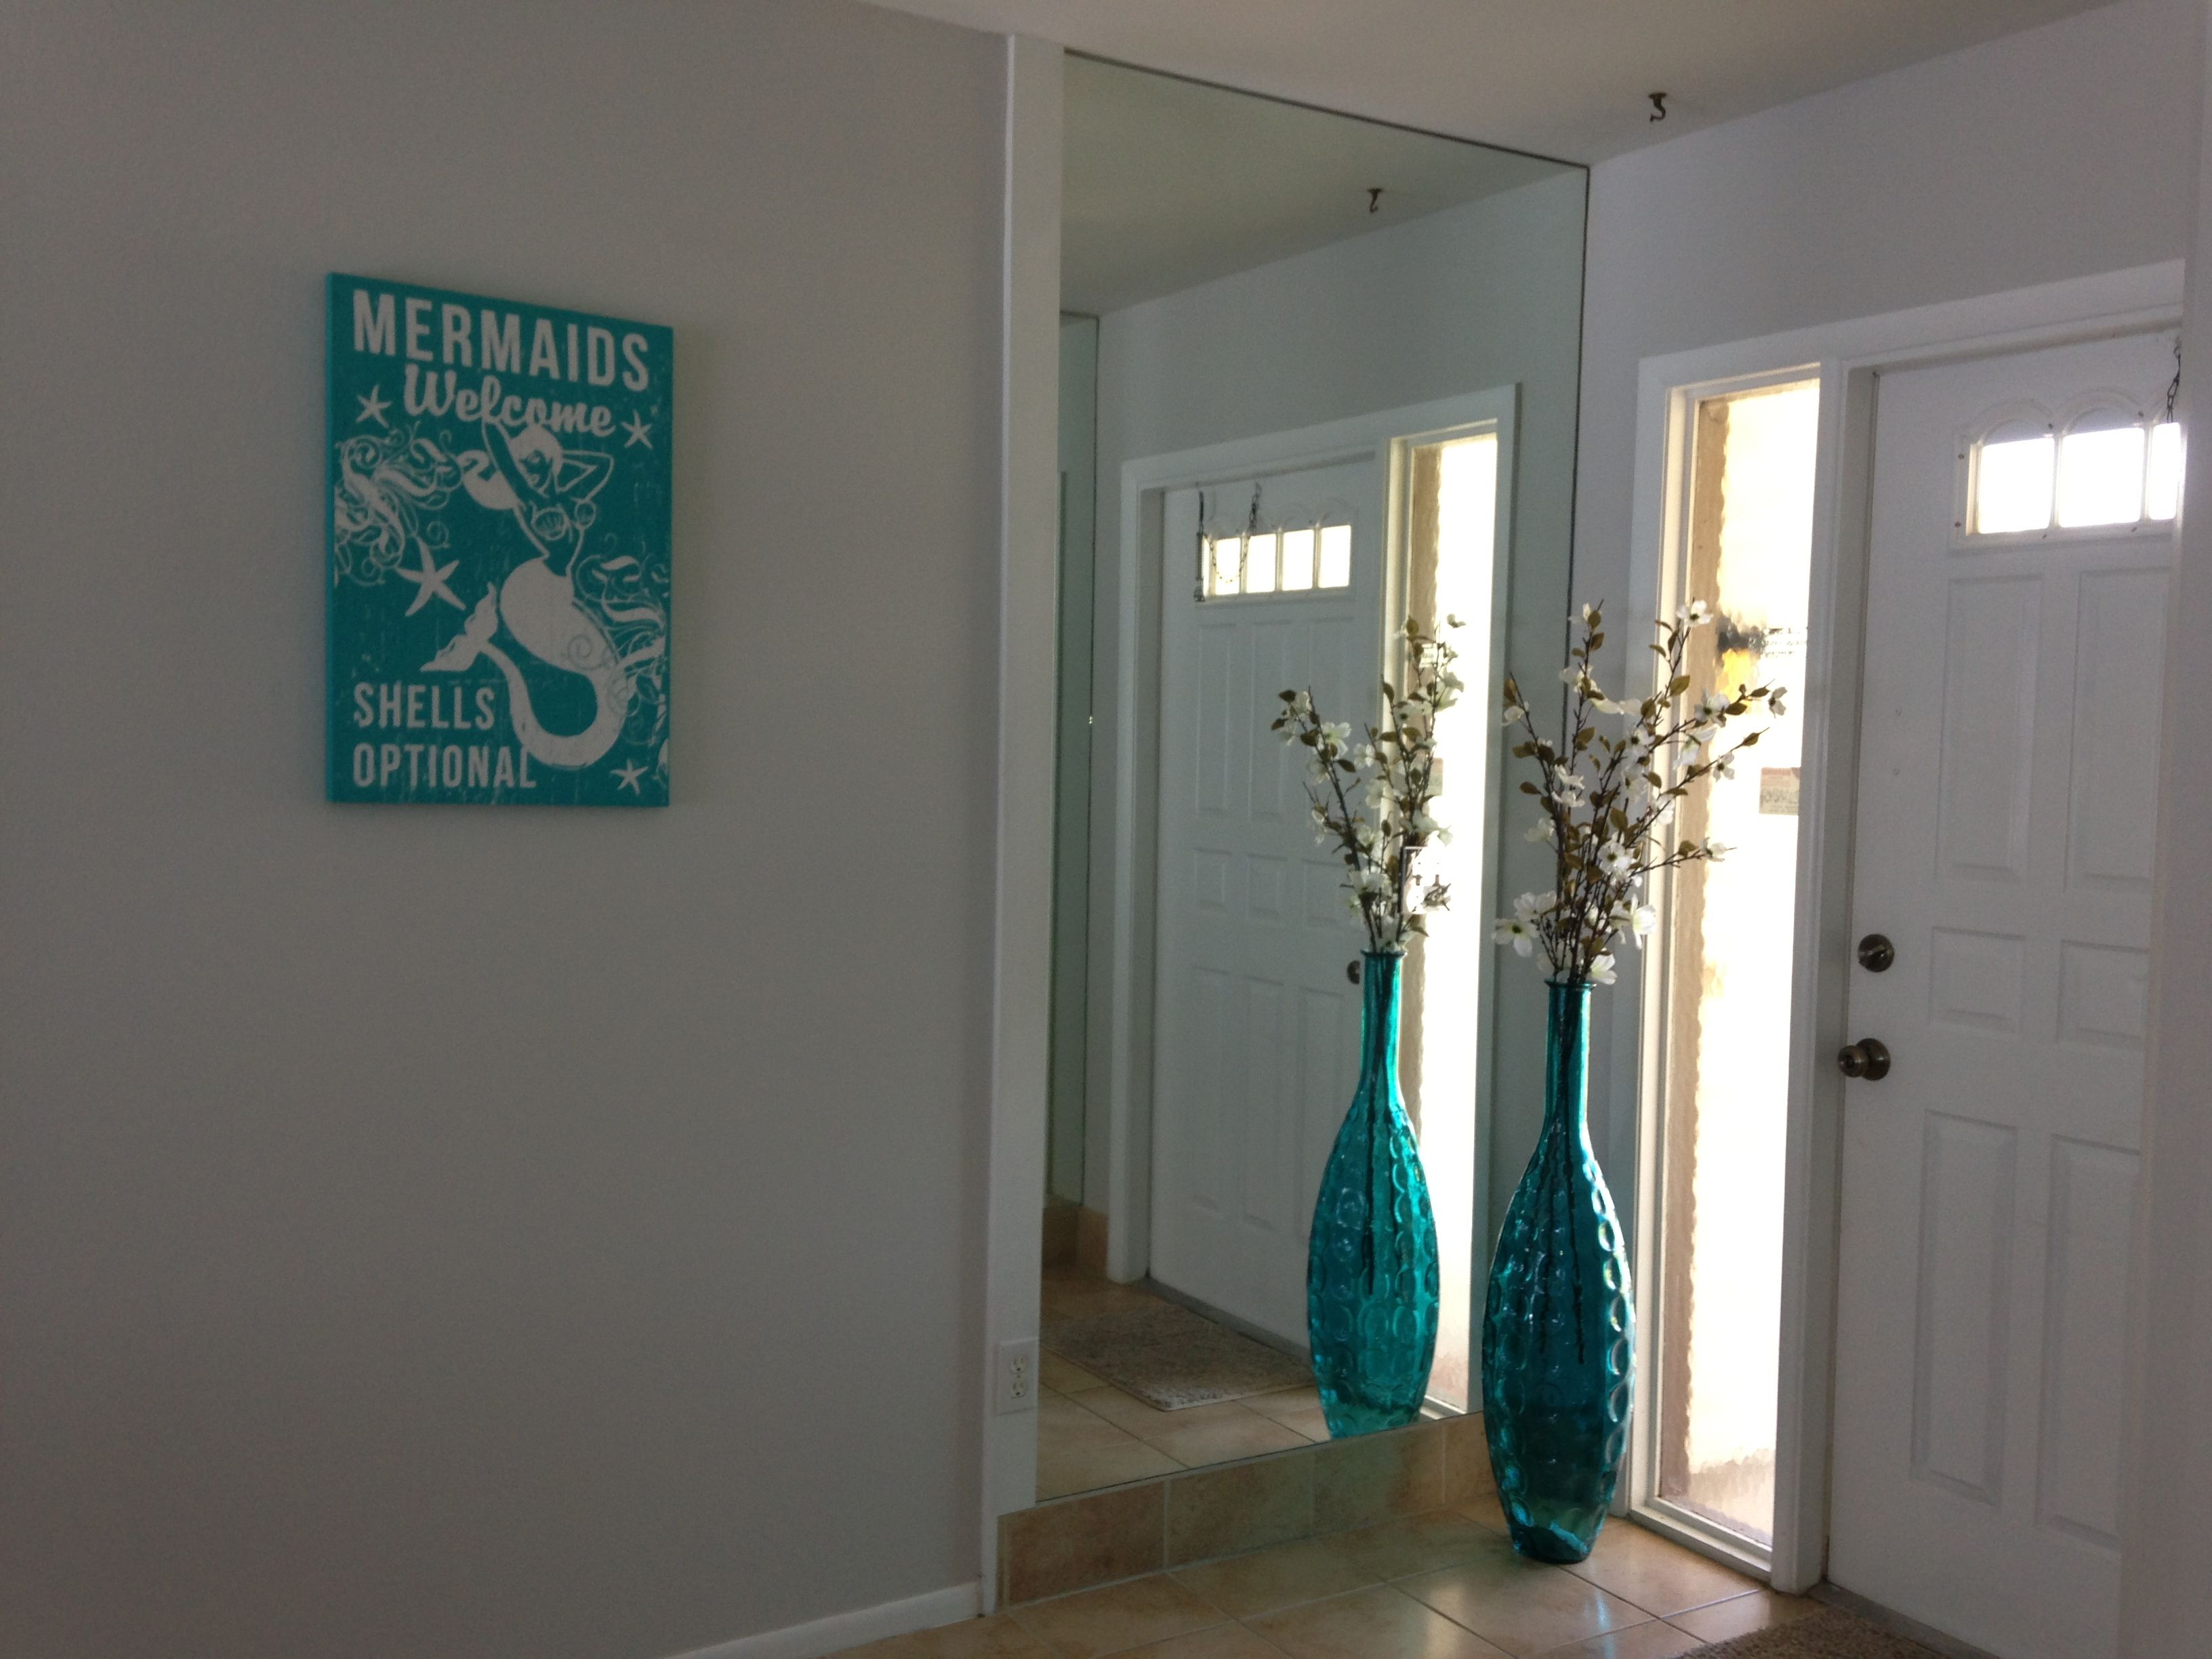 Bed under window feng shui  fung shui home entrance  my beach house design  pinterest  feng